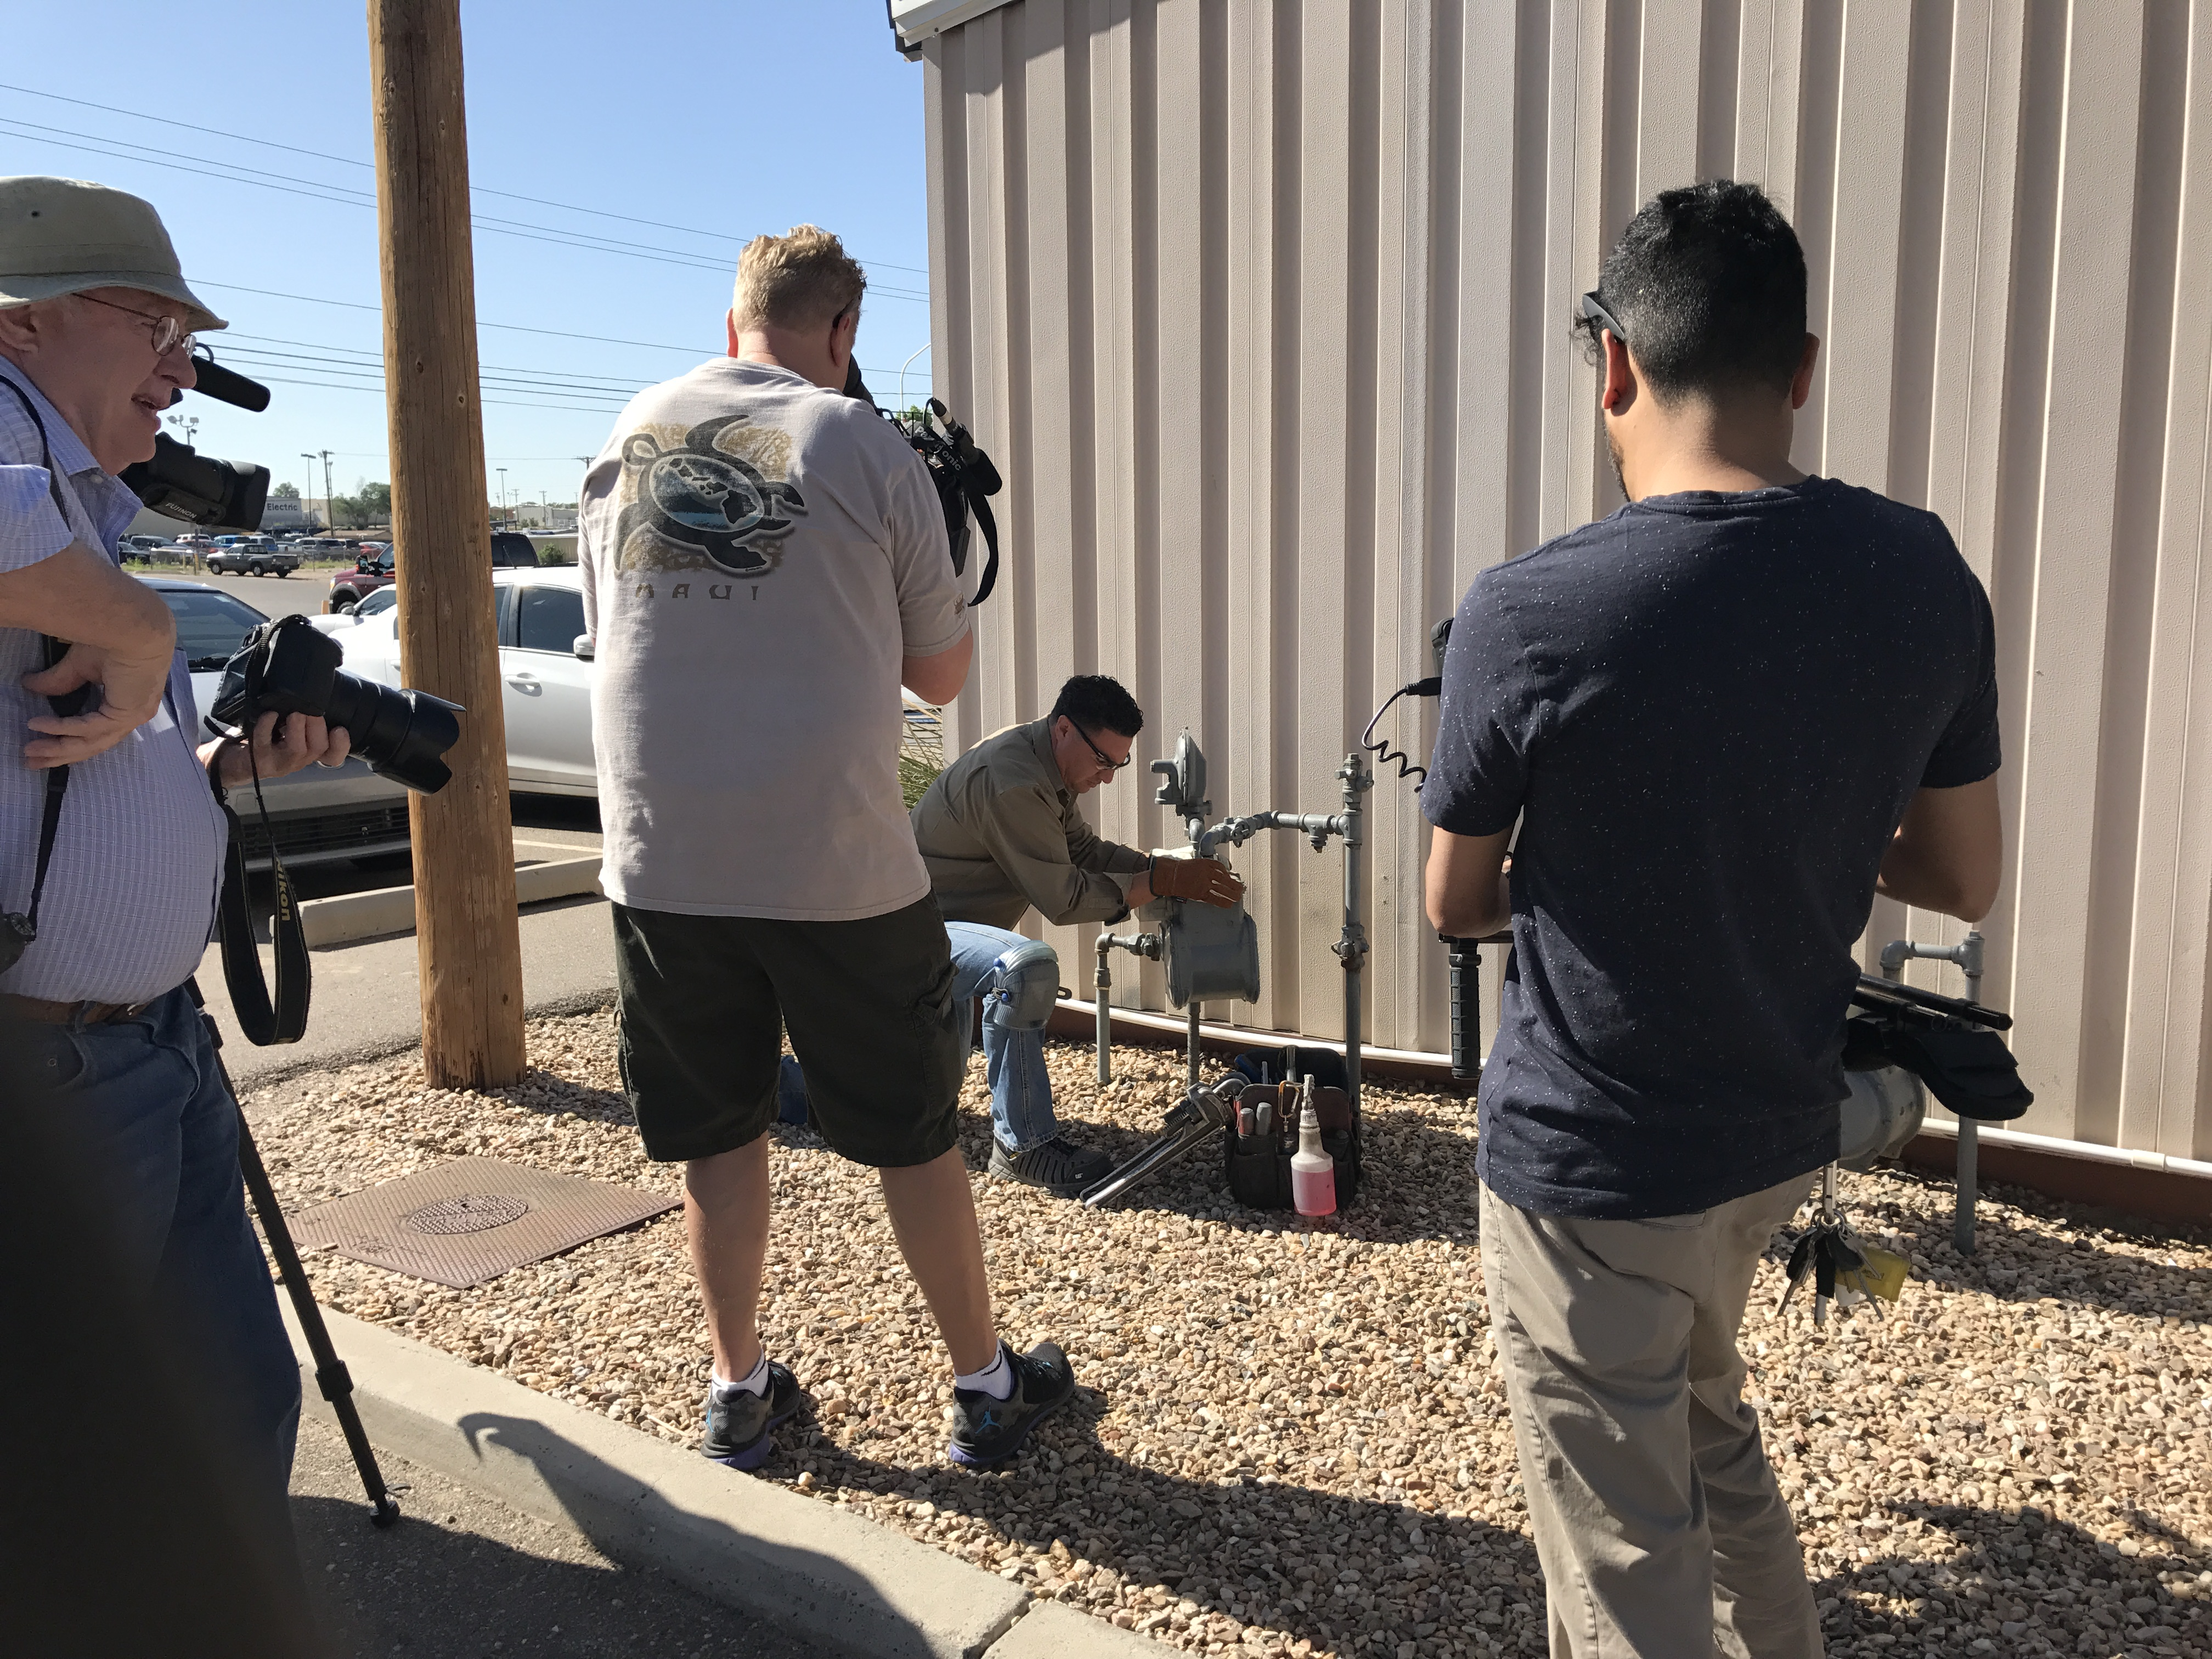 Several camera men filming an NMGC service technician while he works on a natural gas meter.